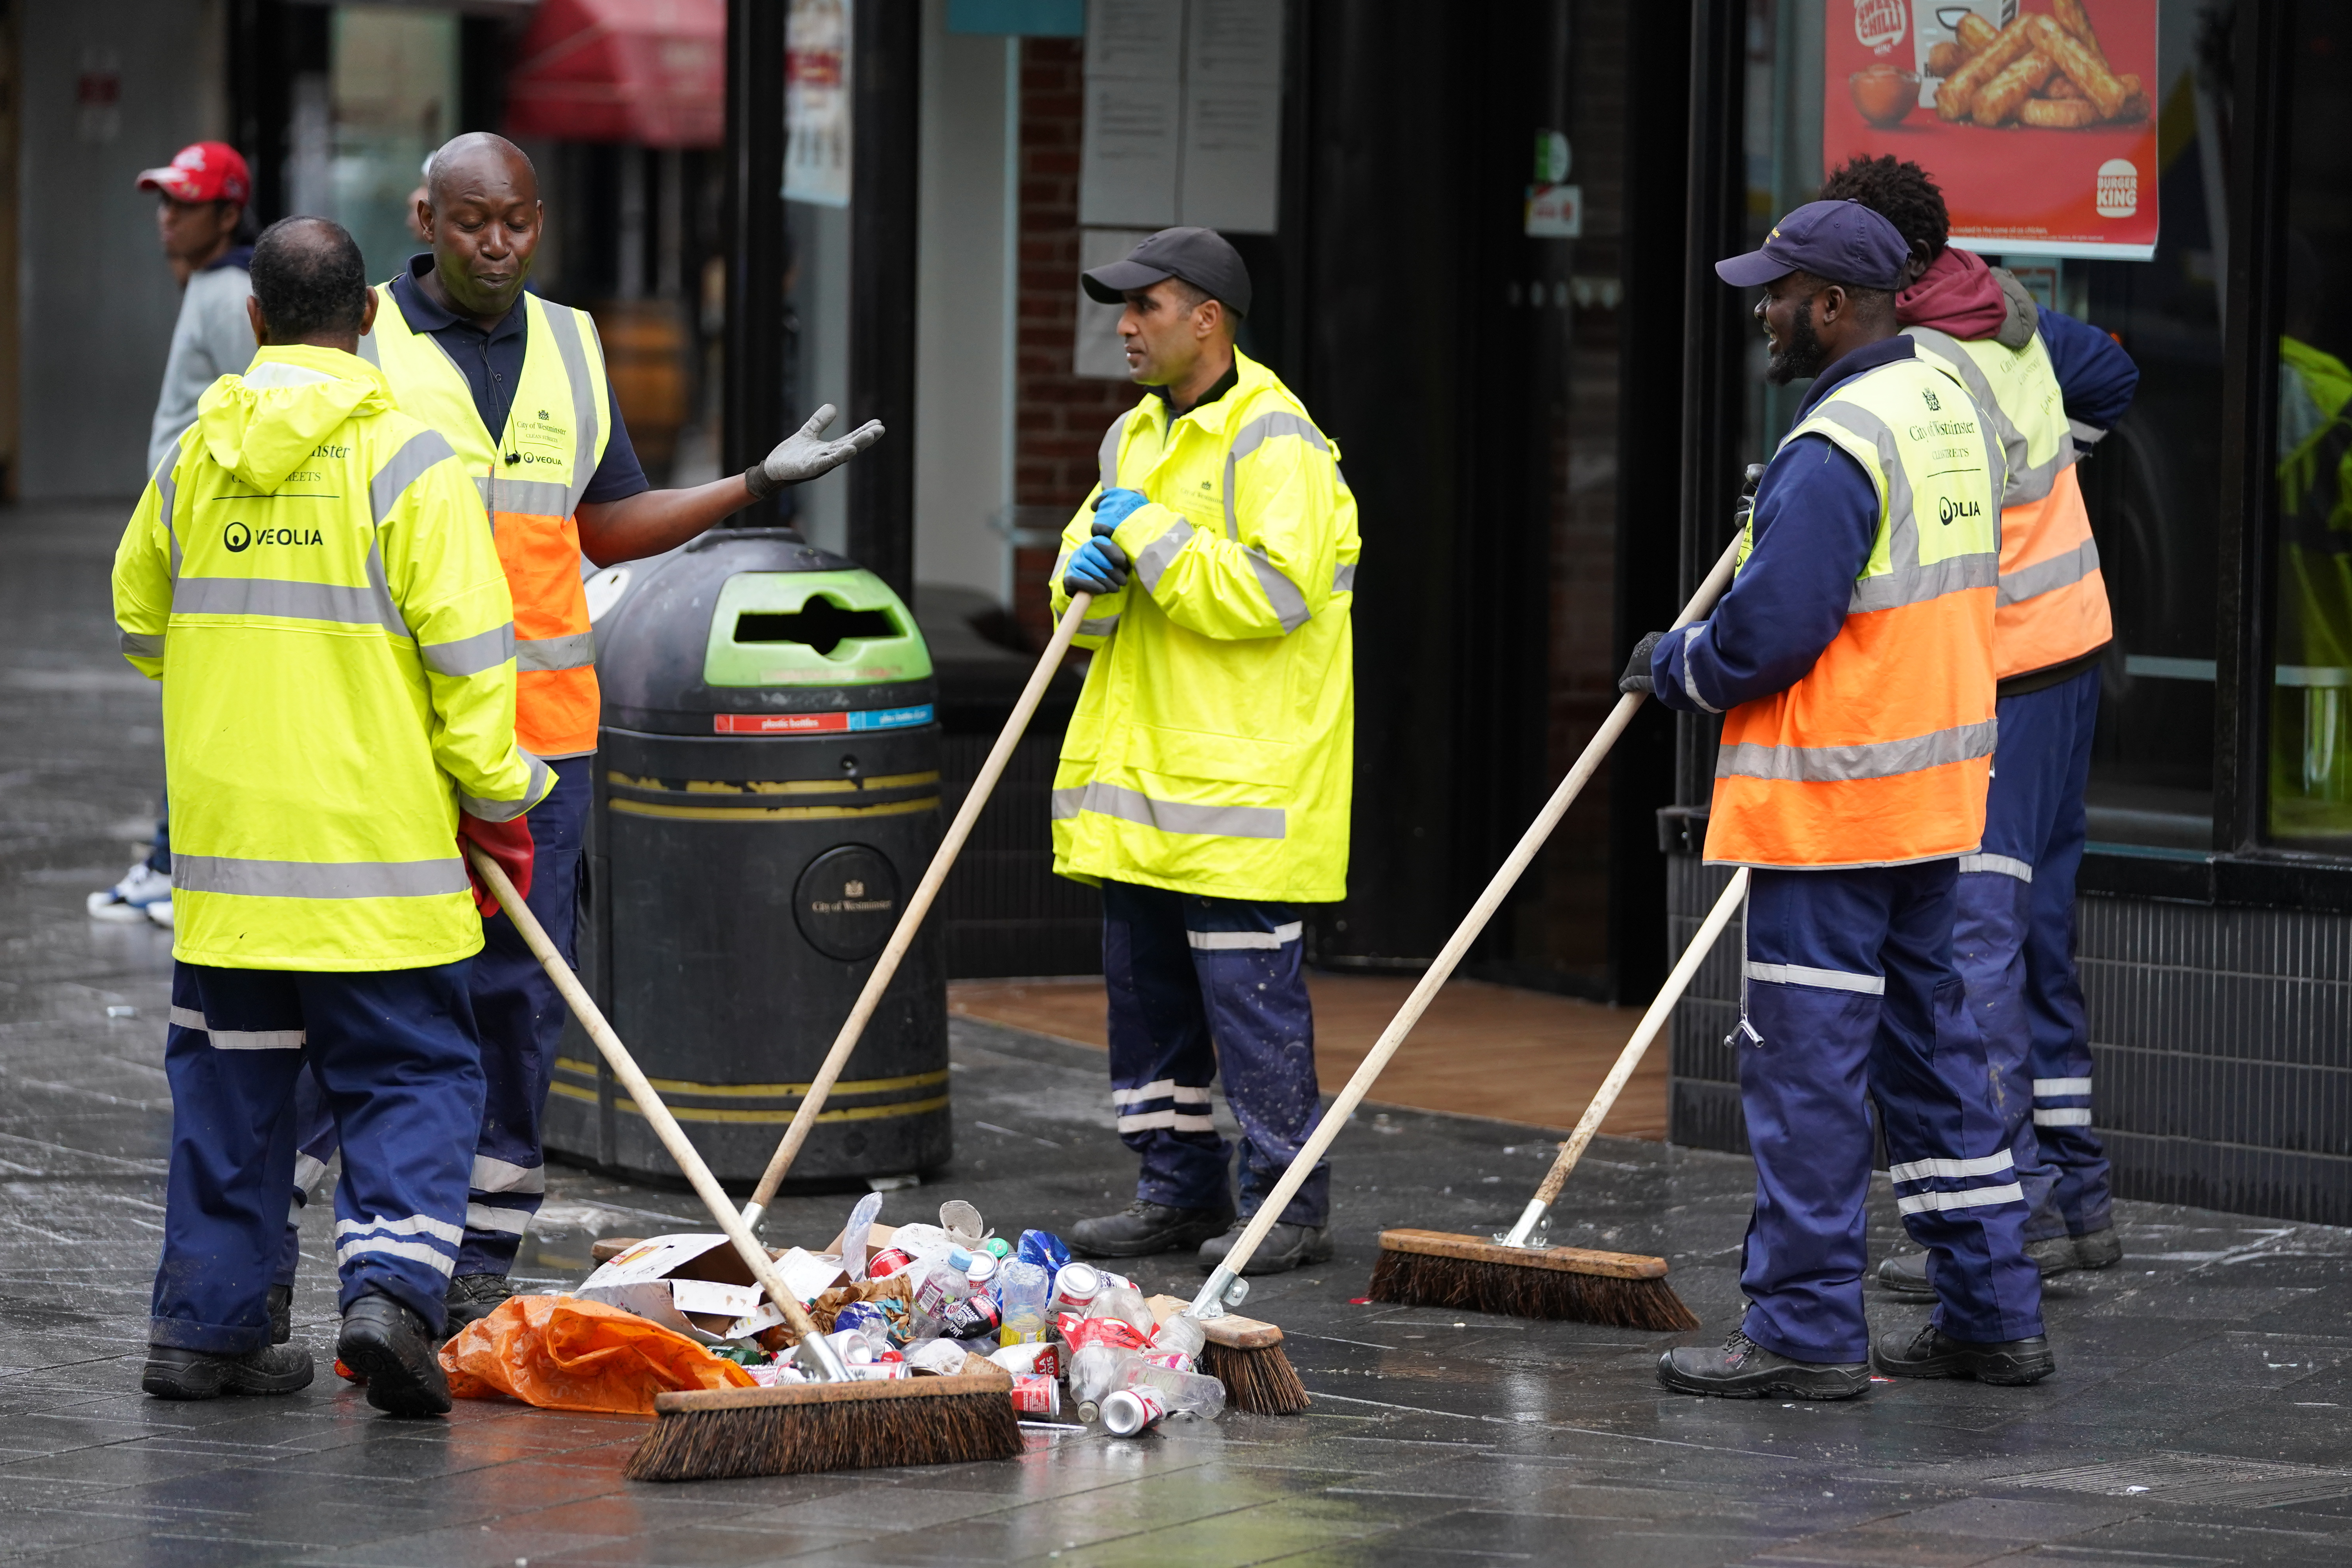 <p>Street cleaners clear debris in London's Leicester Square the morning after England were beaten in the final of the UEFA Euro 2020. Picture date: Monday July 12, 2021.</p>